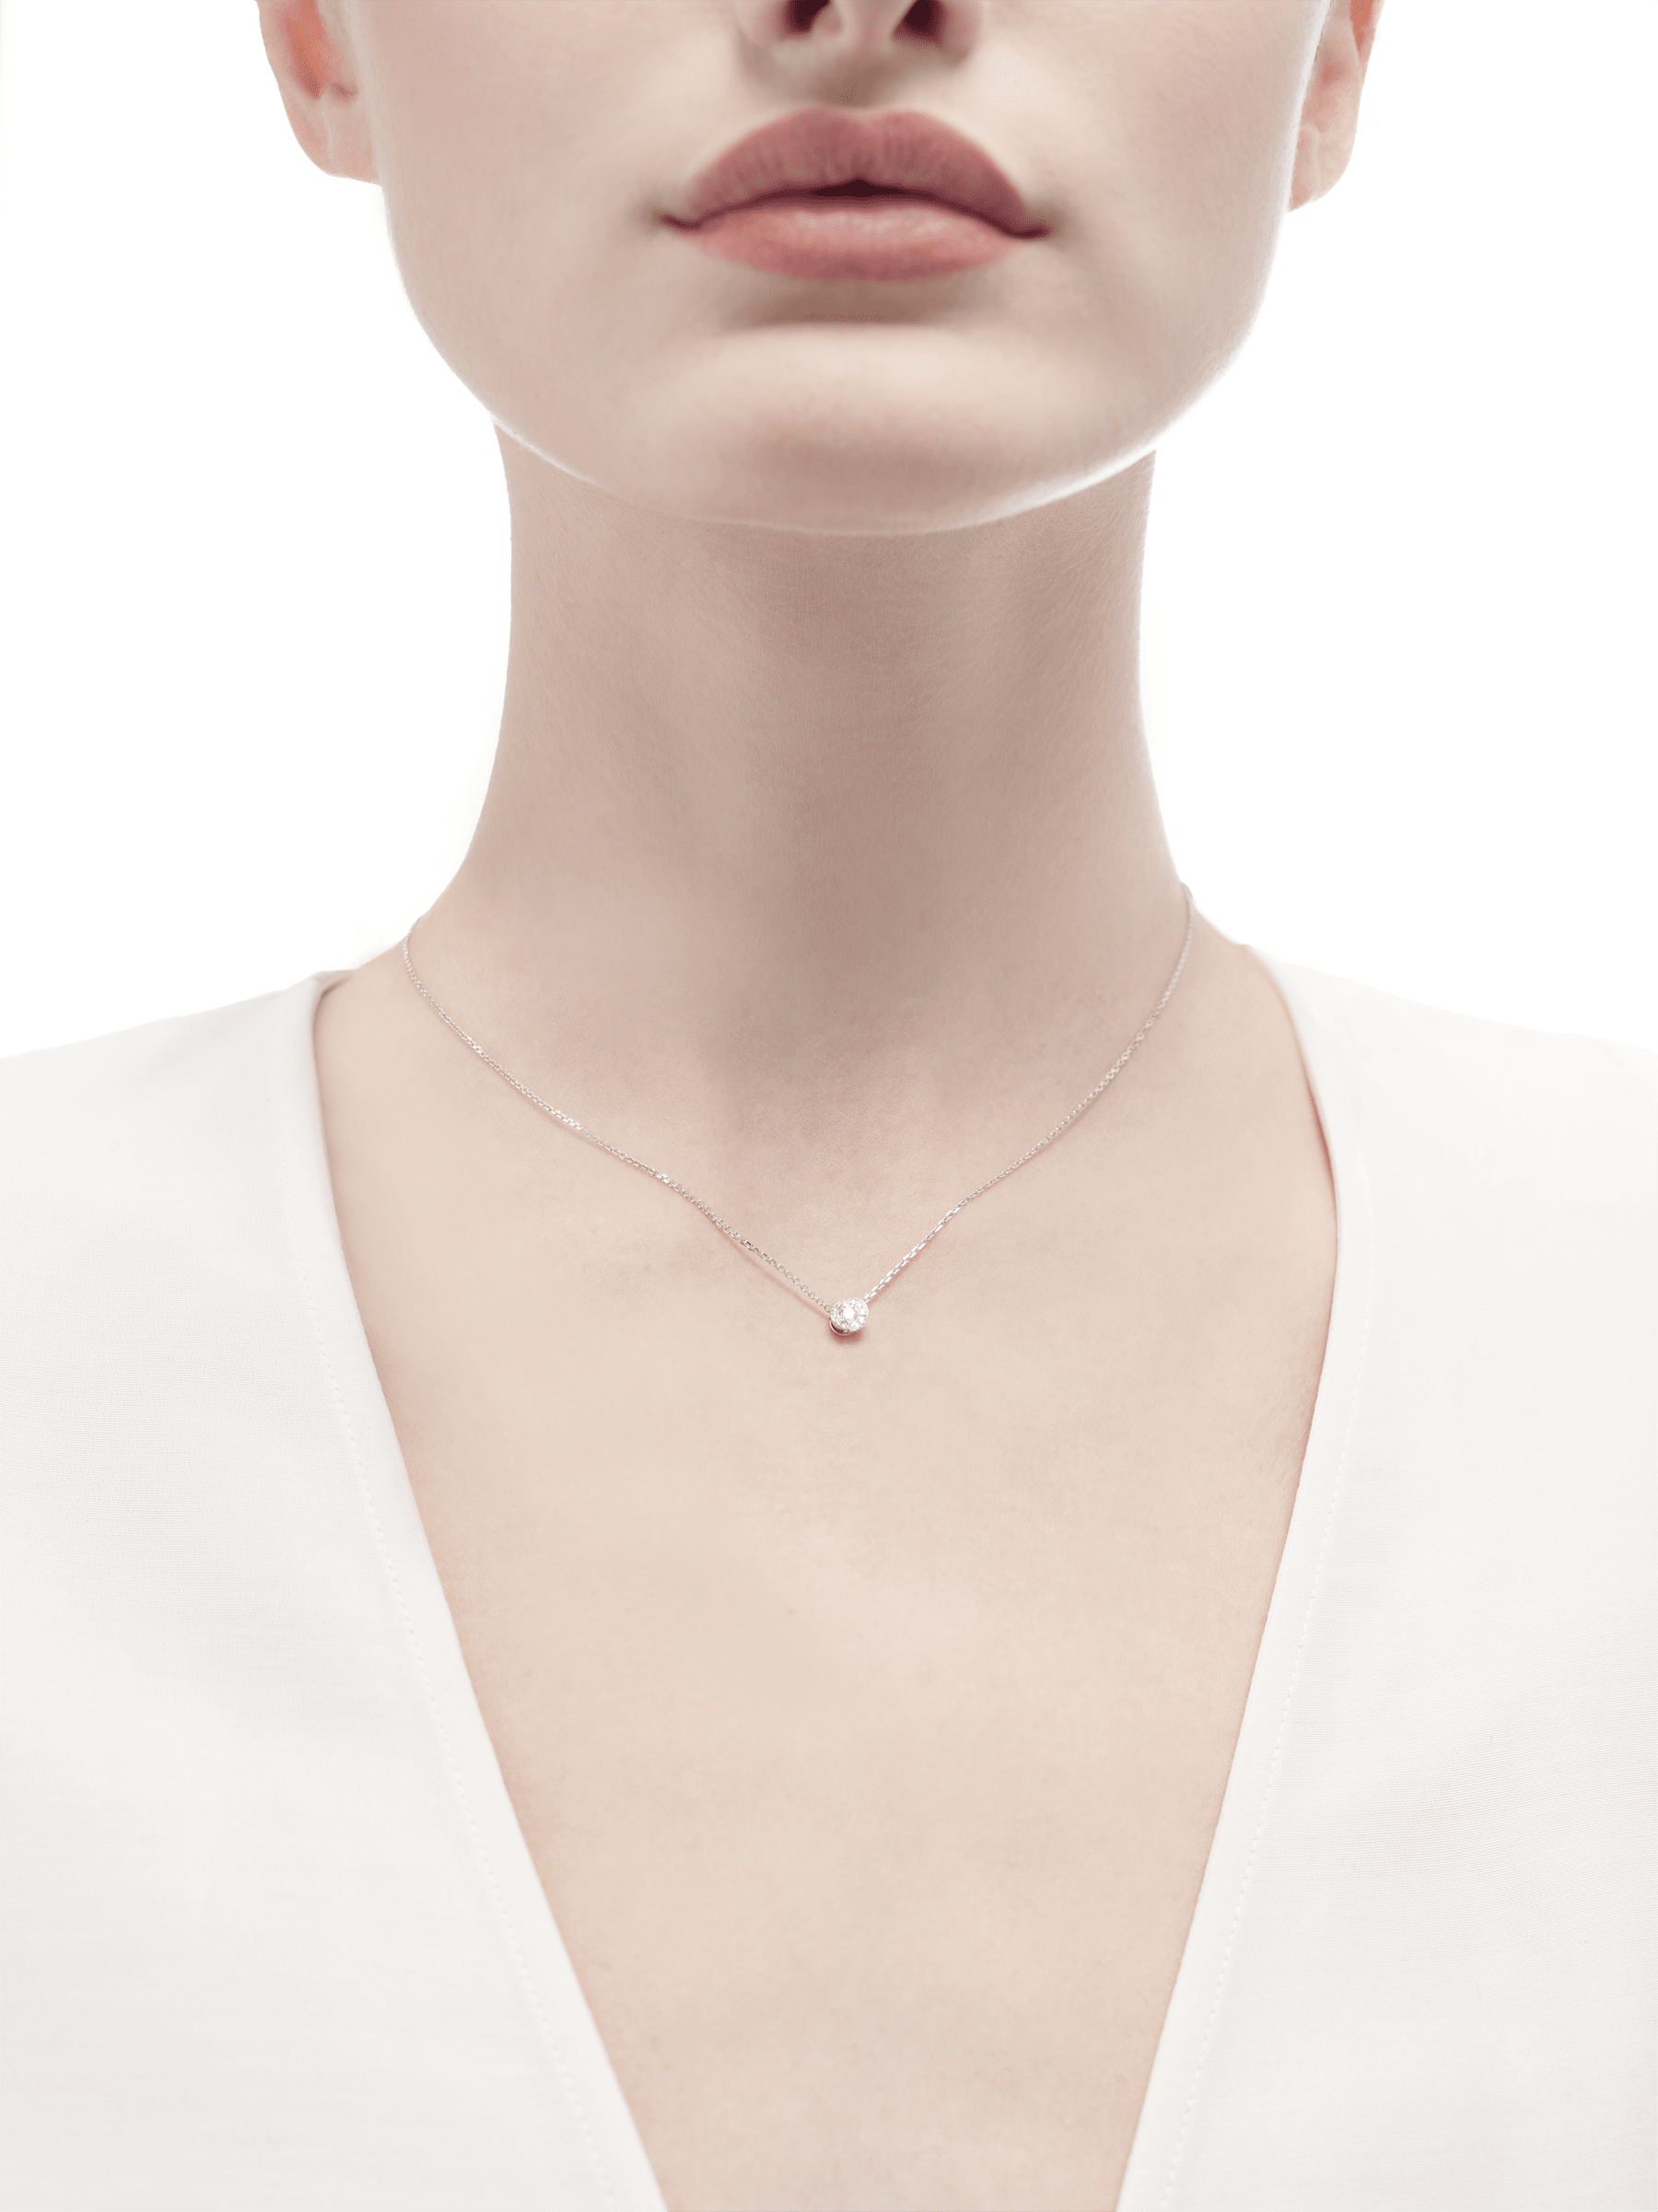 Incontro d'Amore necklace with 18 kt white gold chain, 18 kt white gold pendant set with a central diamond (0.10 ct) and pavé diamonds. 355249 image 3